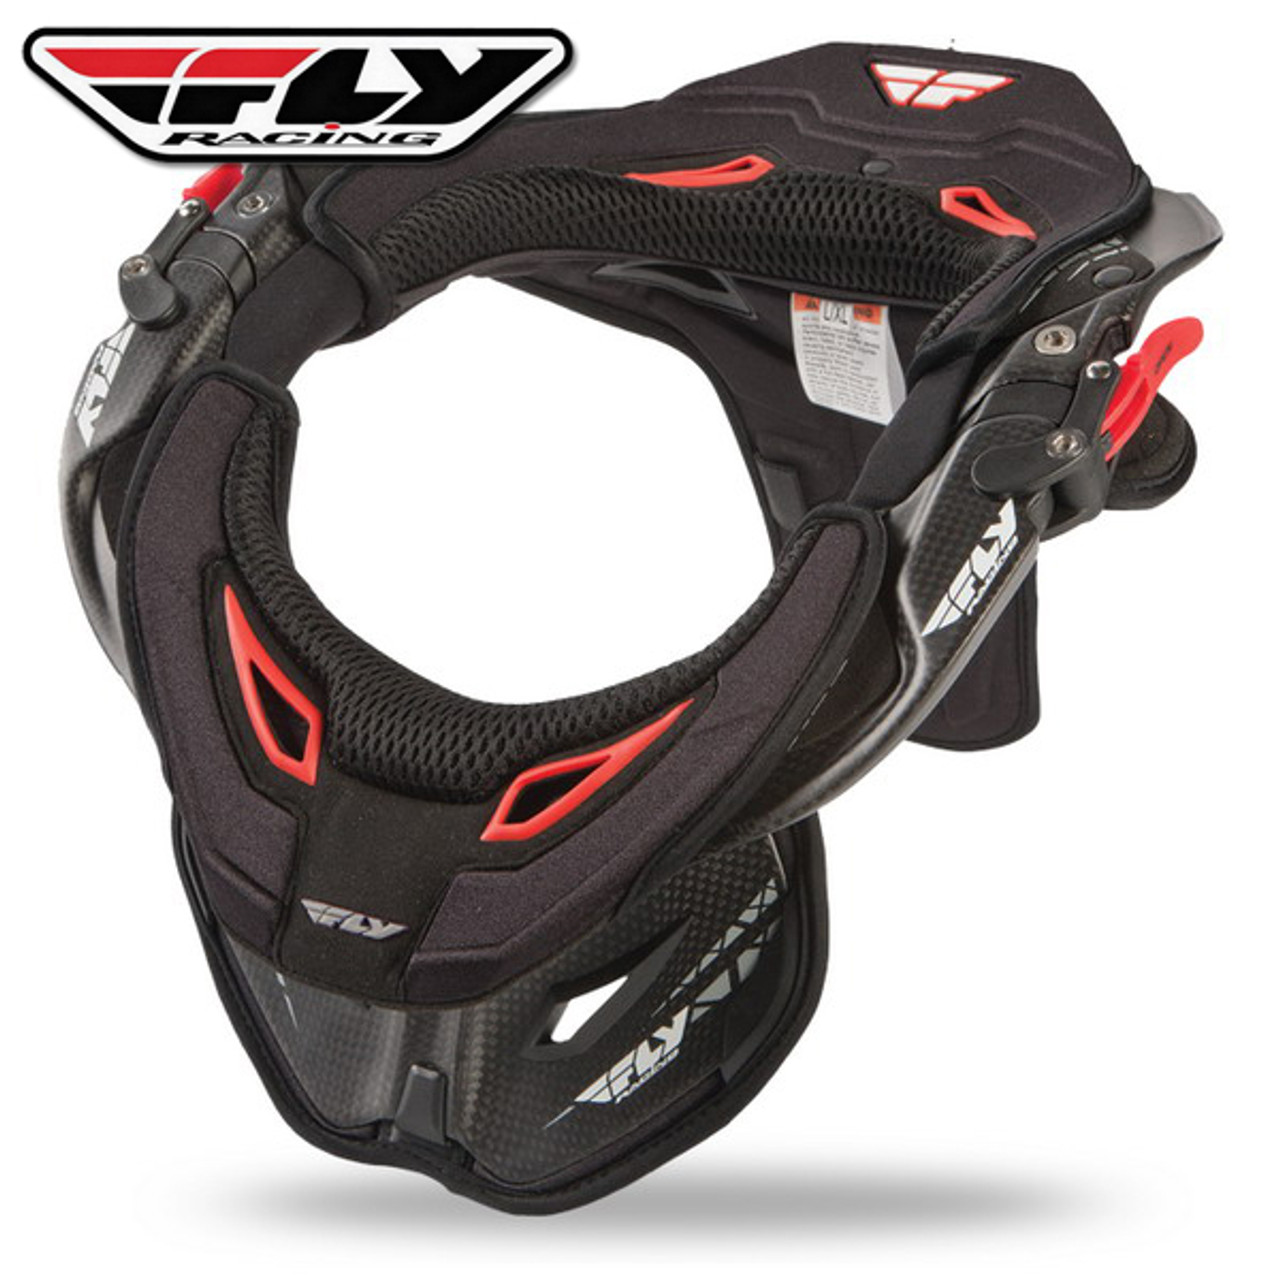 Carbon//Black, Small//Medium Leatt GPX 6.5 Neck Brace 1015100100